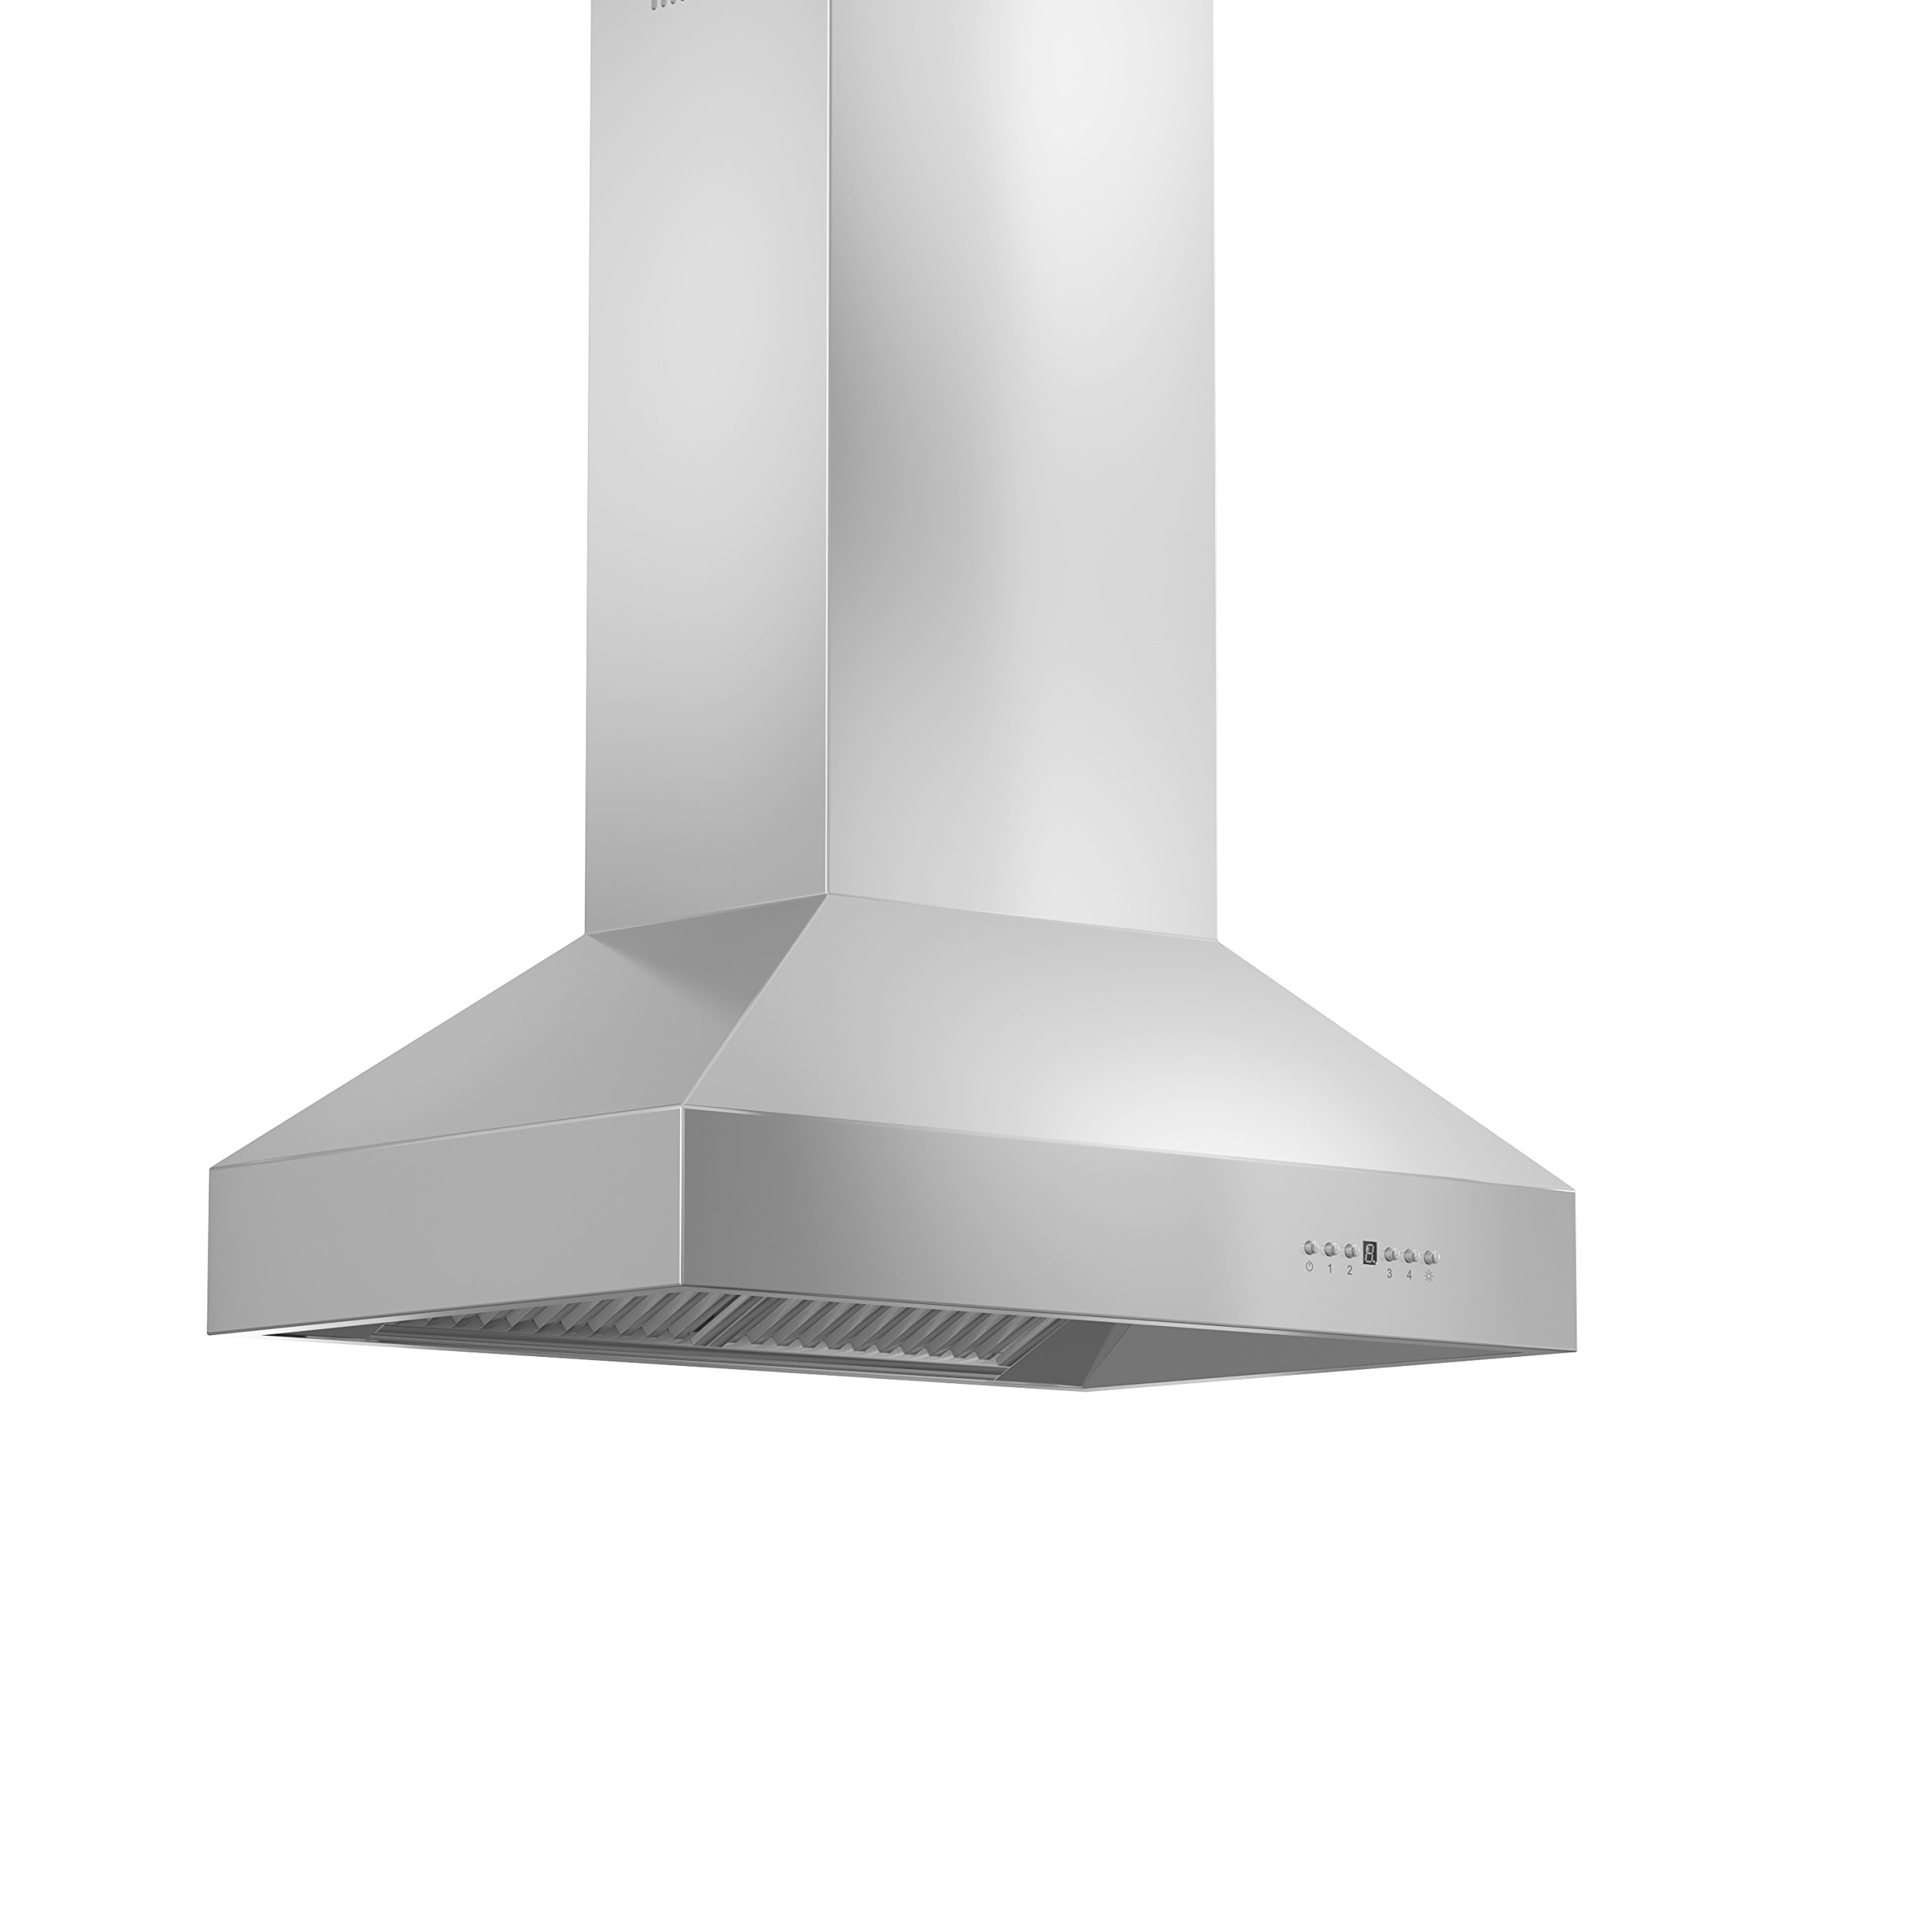 ZLINE 48 in. 900 CFM Island Mount Range Hood in Stainless Steel with Remote Single Blower